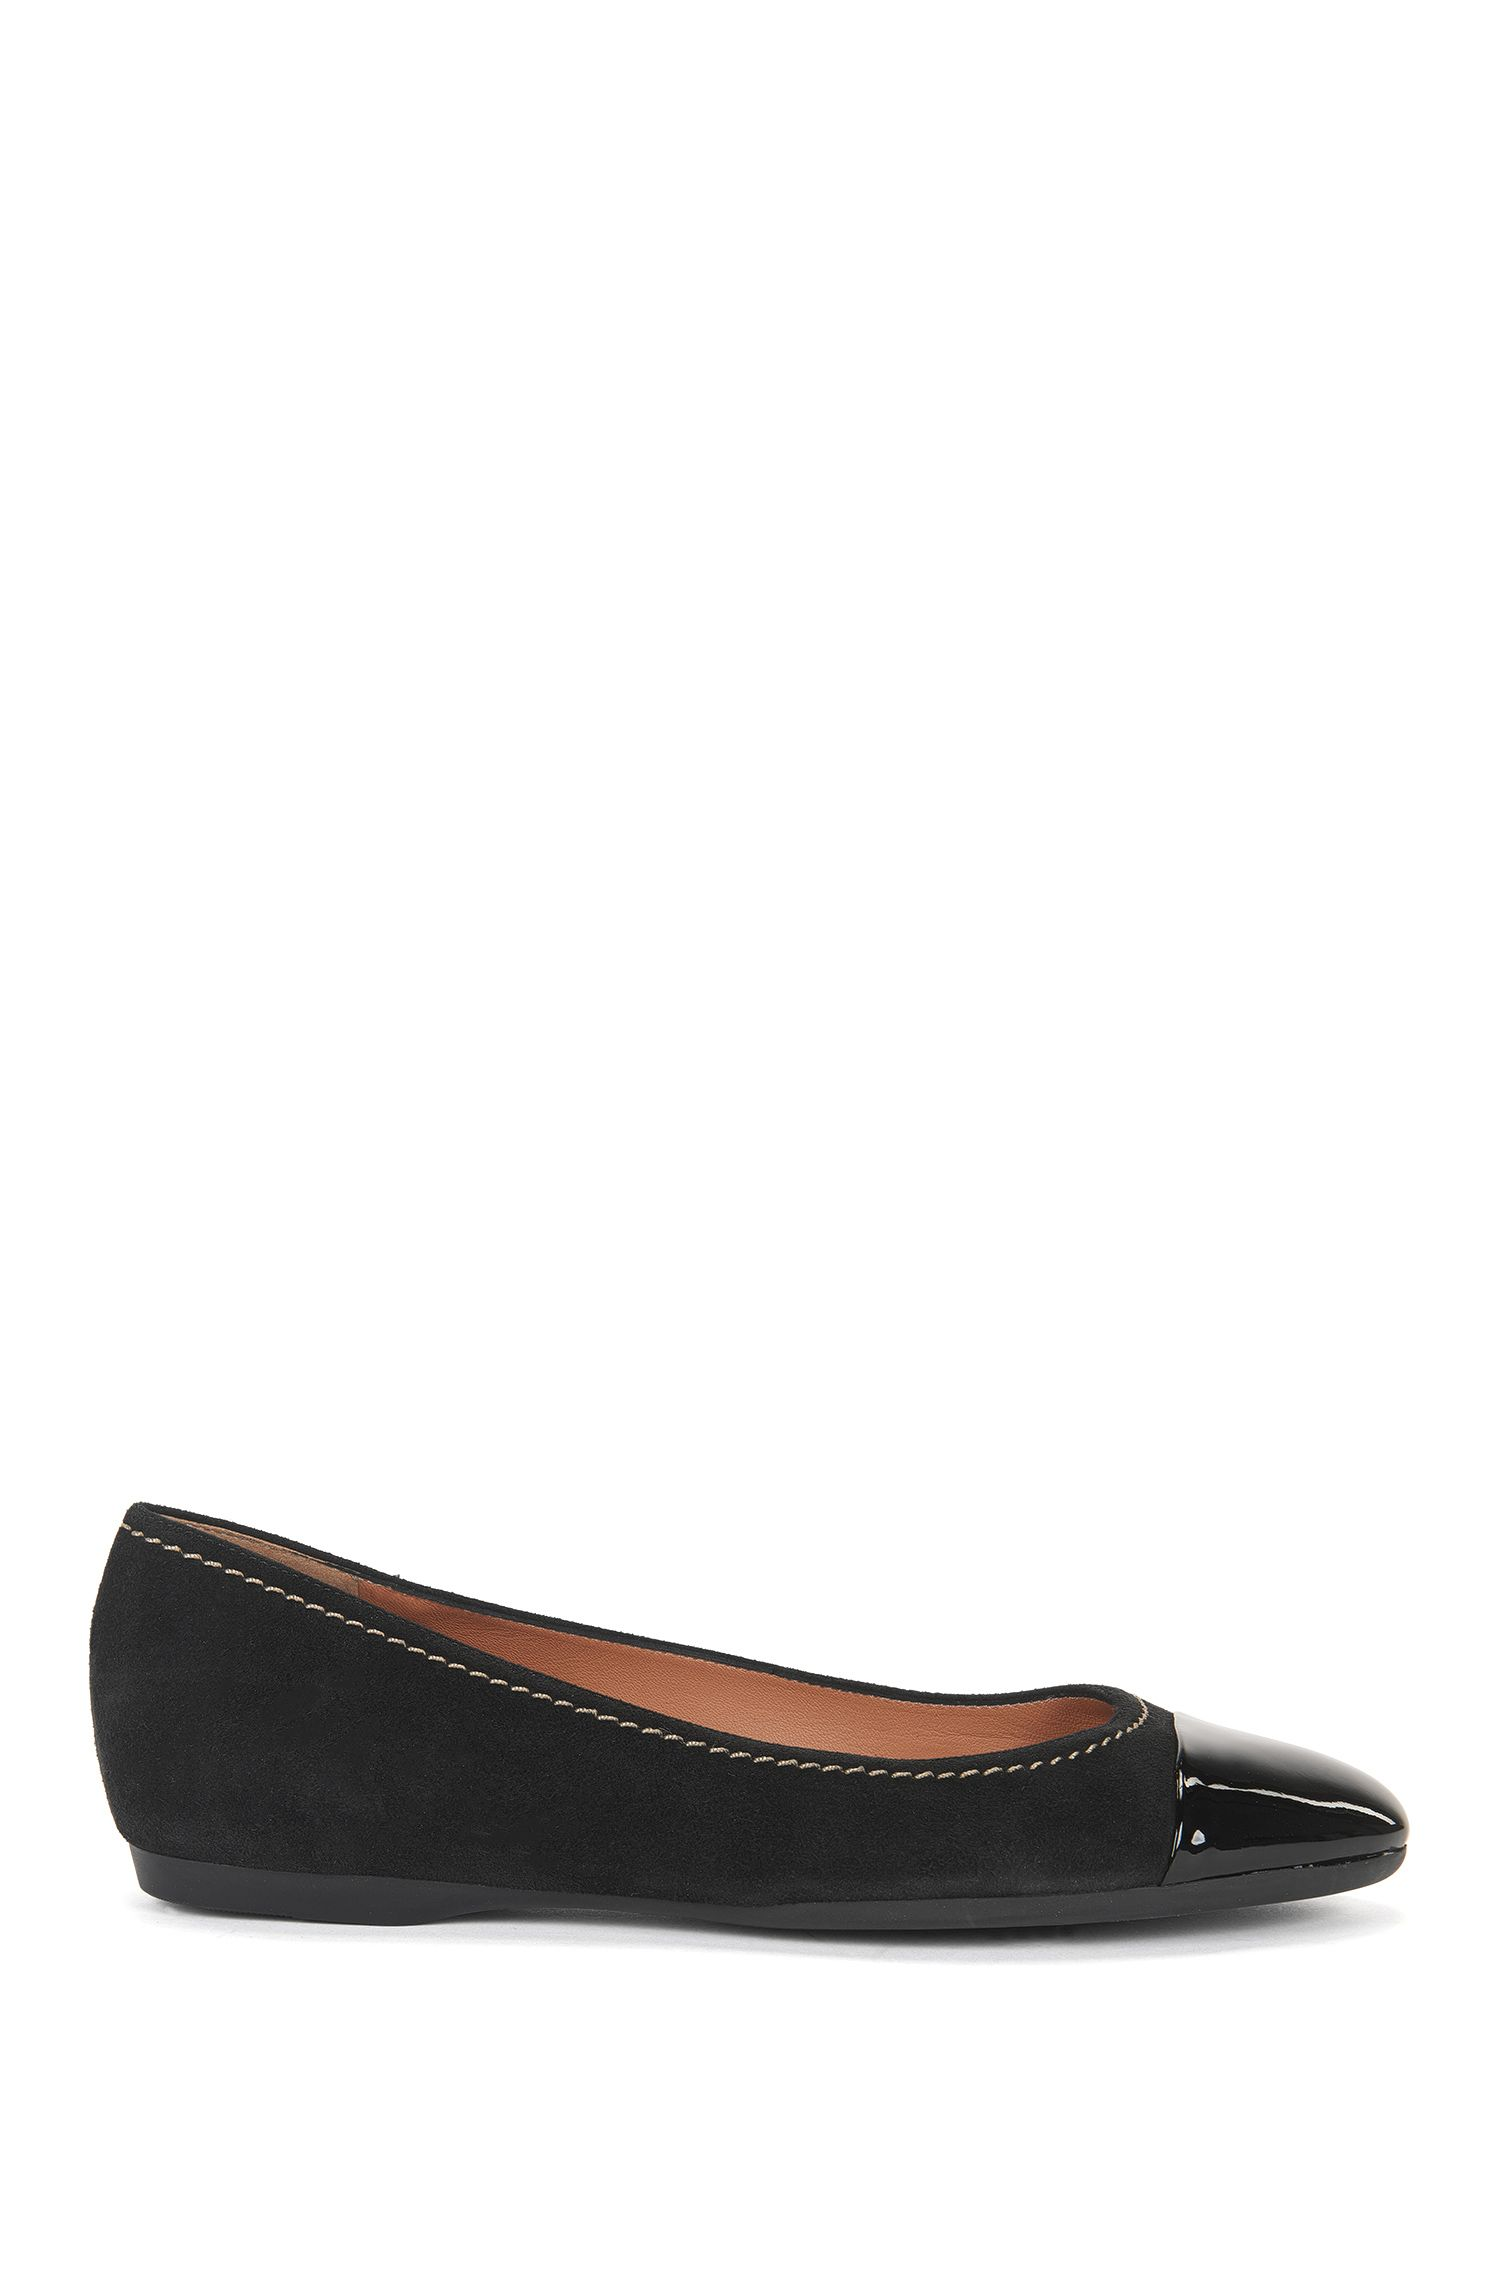 Suede ballet flats with patent toe